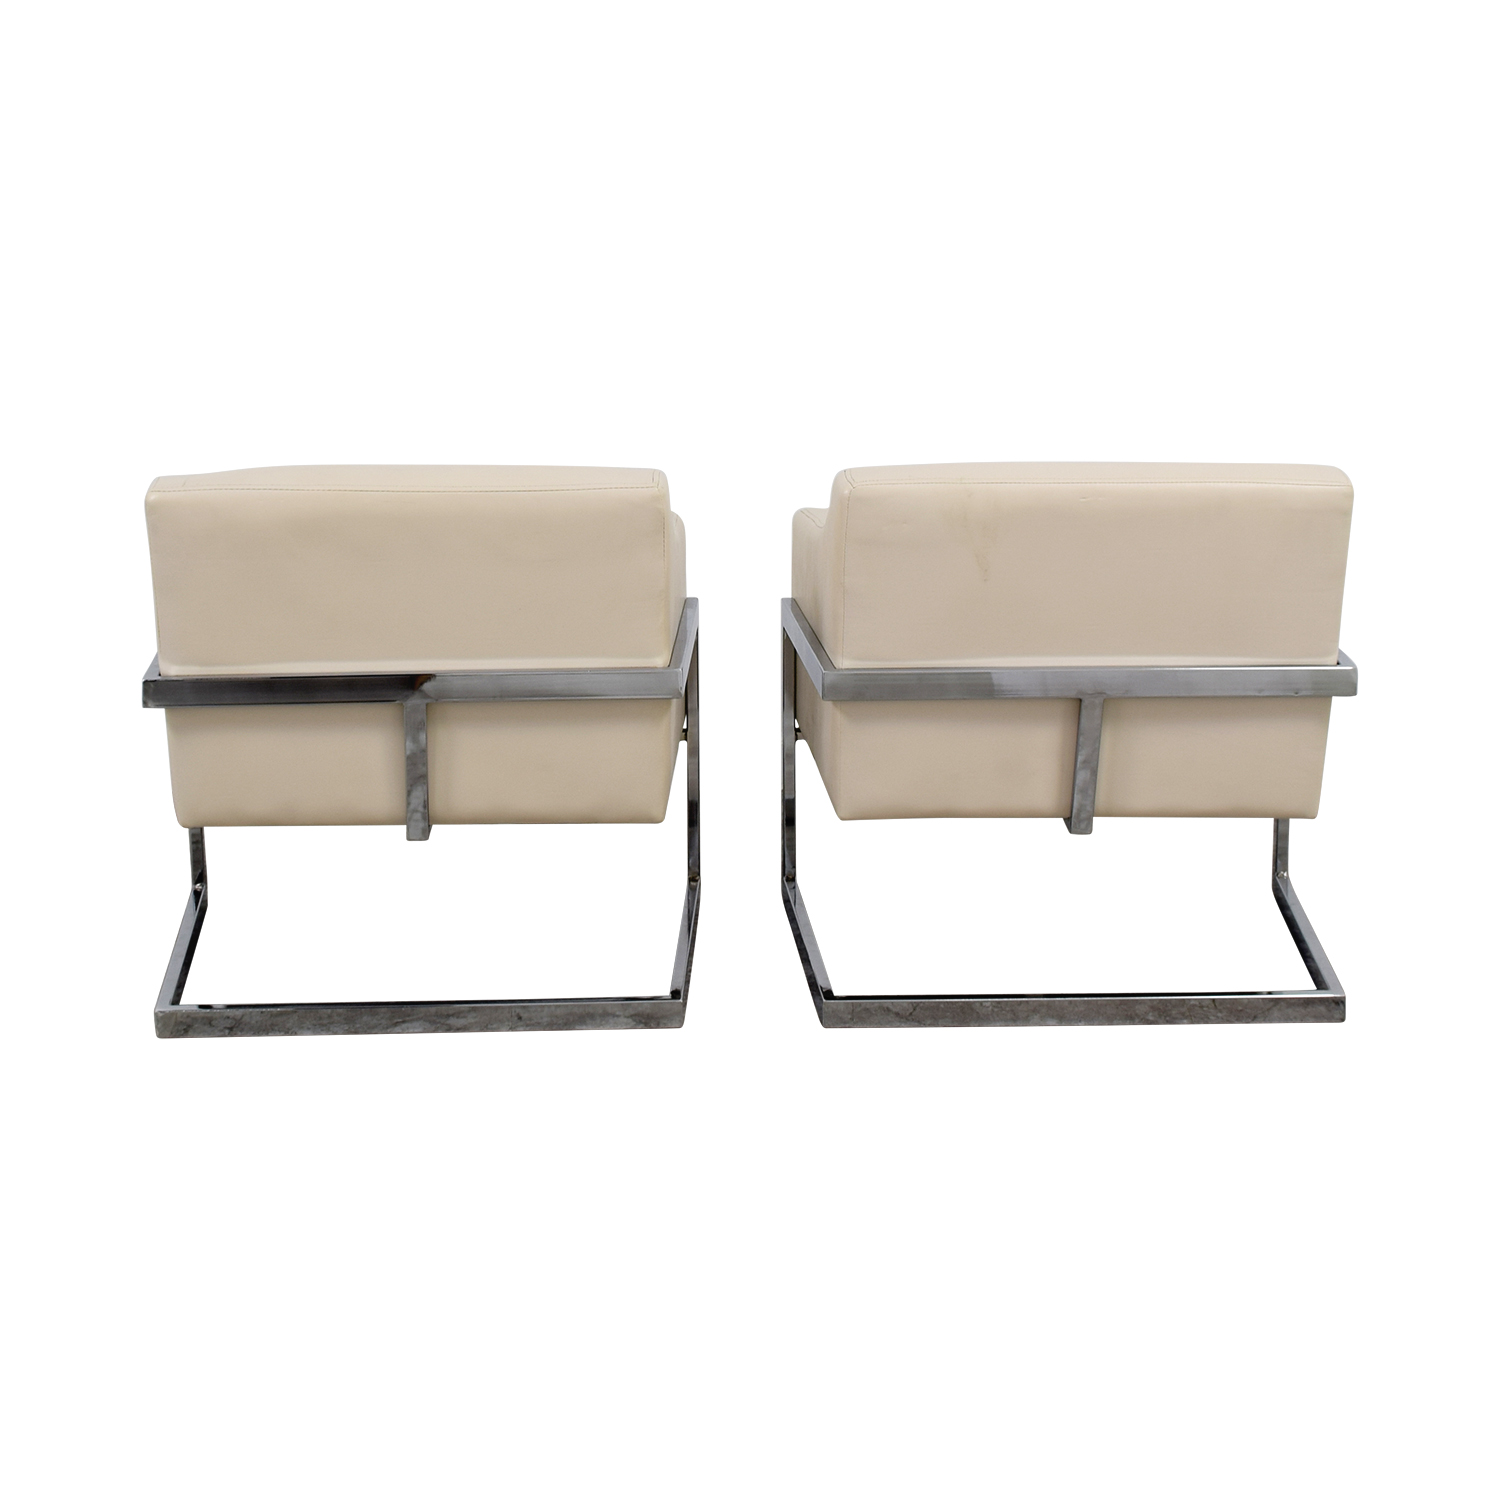 Coaster Coaster White Leatherette Accent Chairs discount